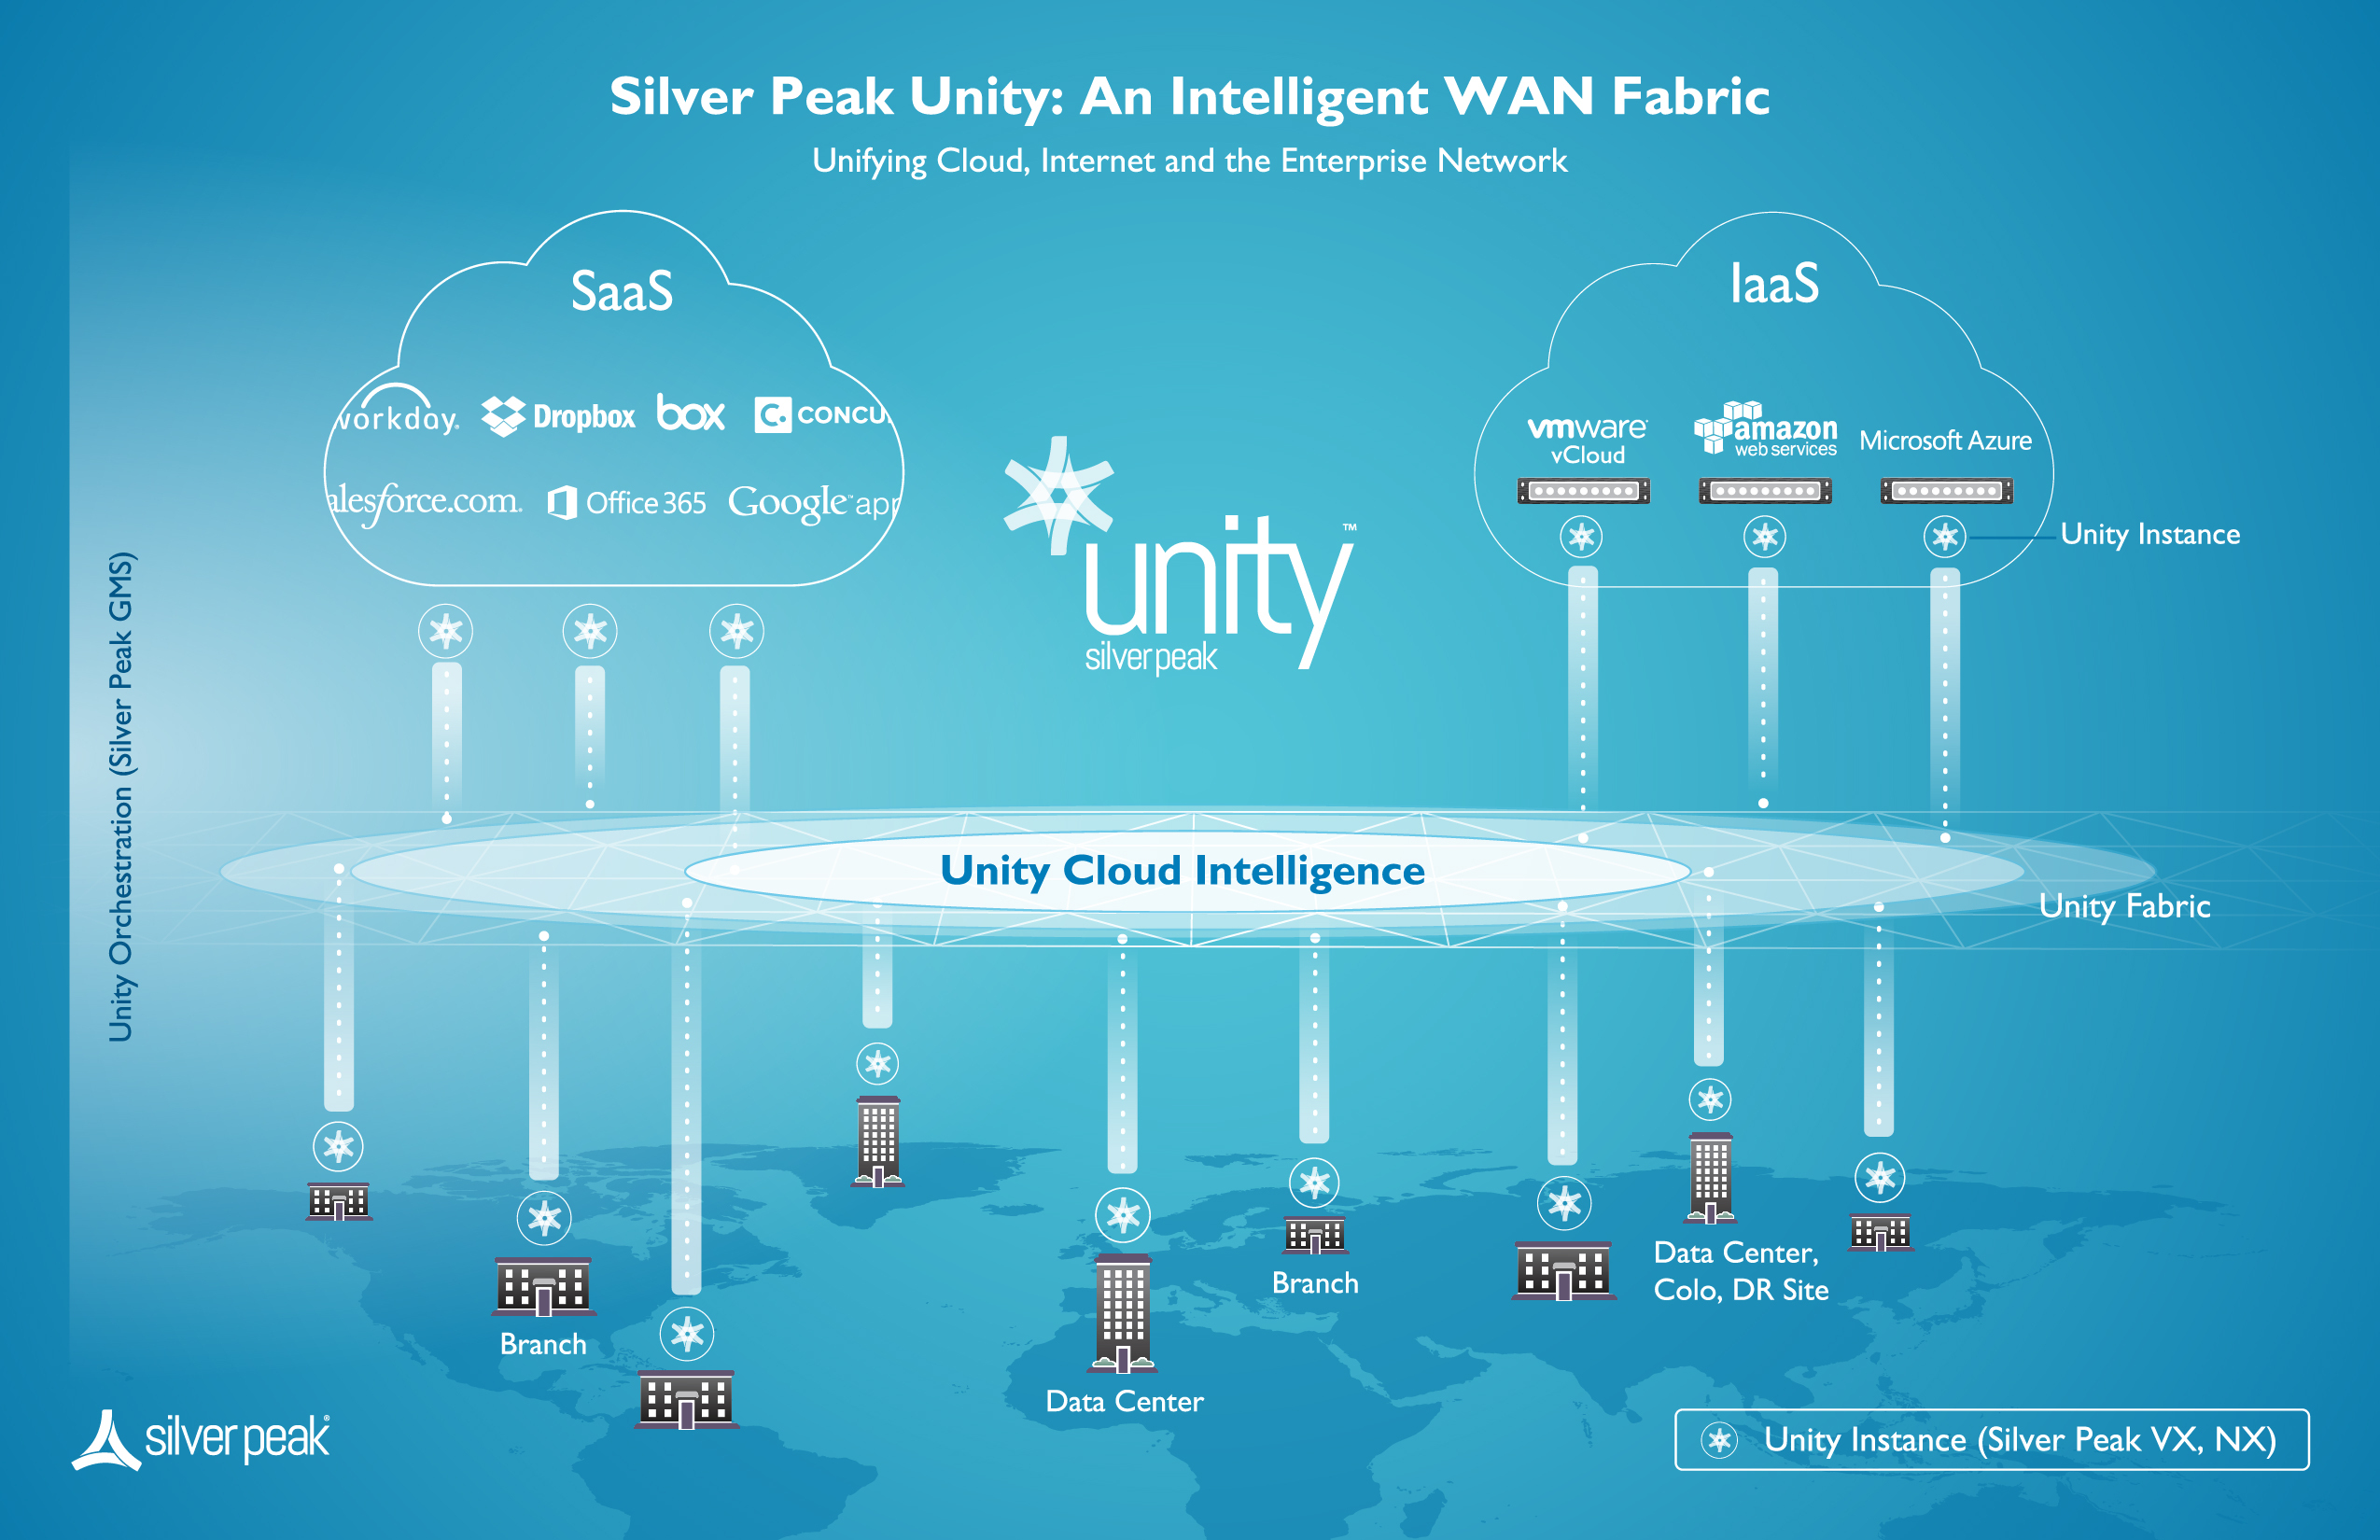 Silver Peak Unity: An Intelligent WAN Fabric (Graphic: Business Wire)